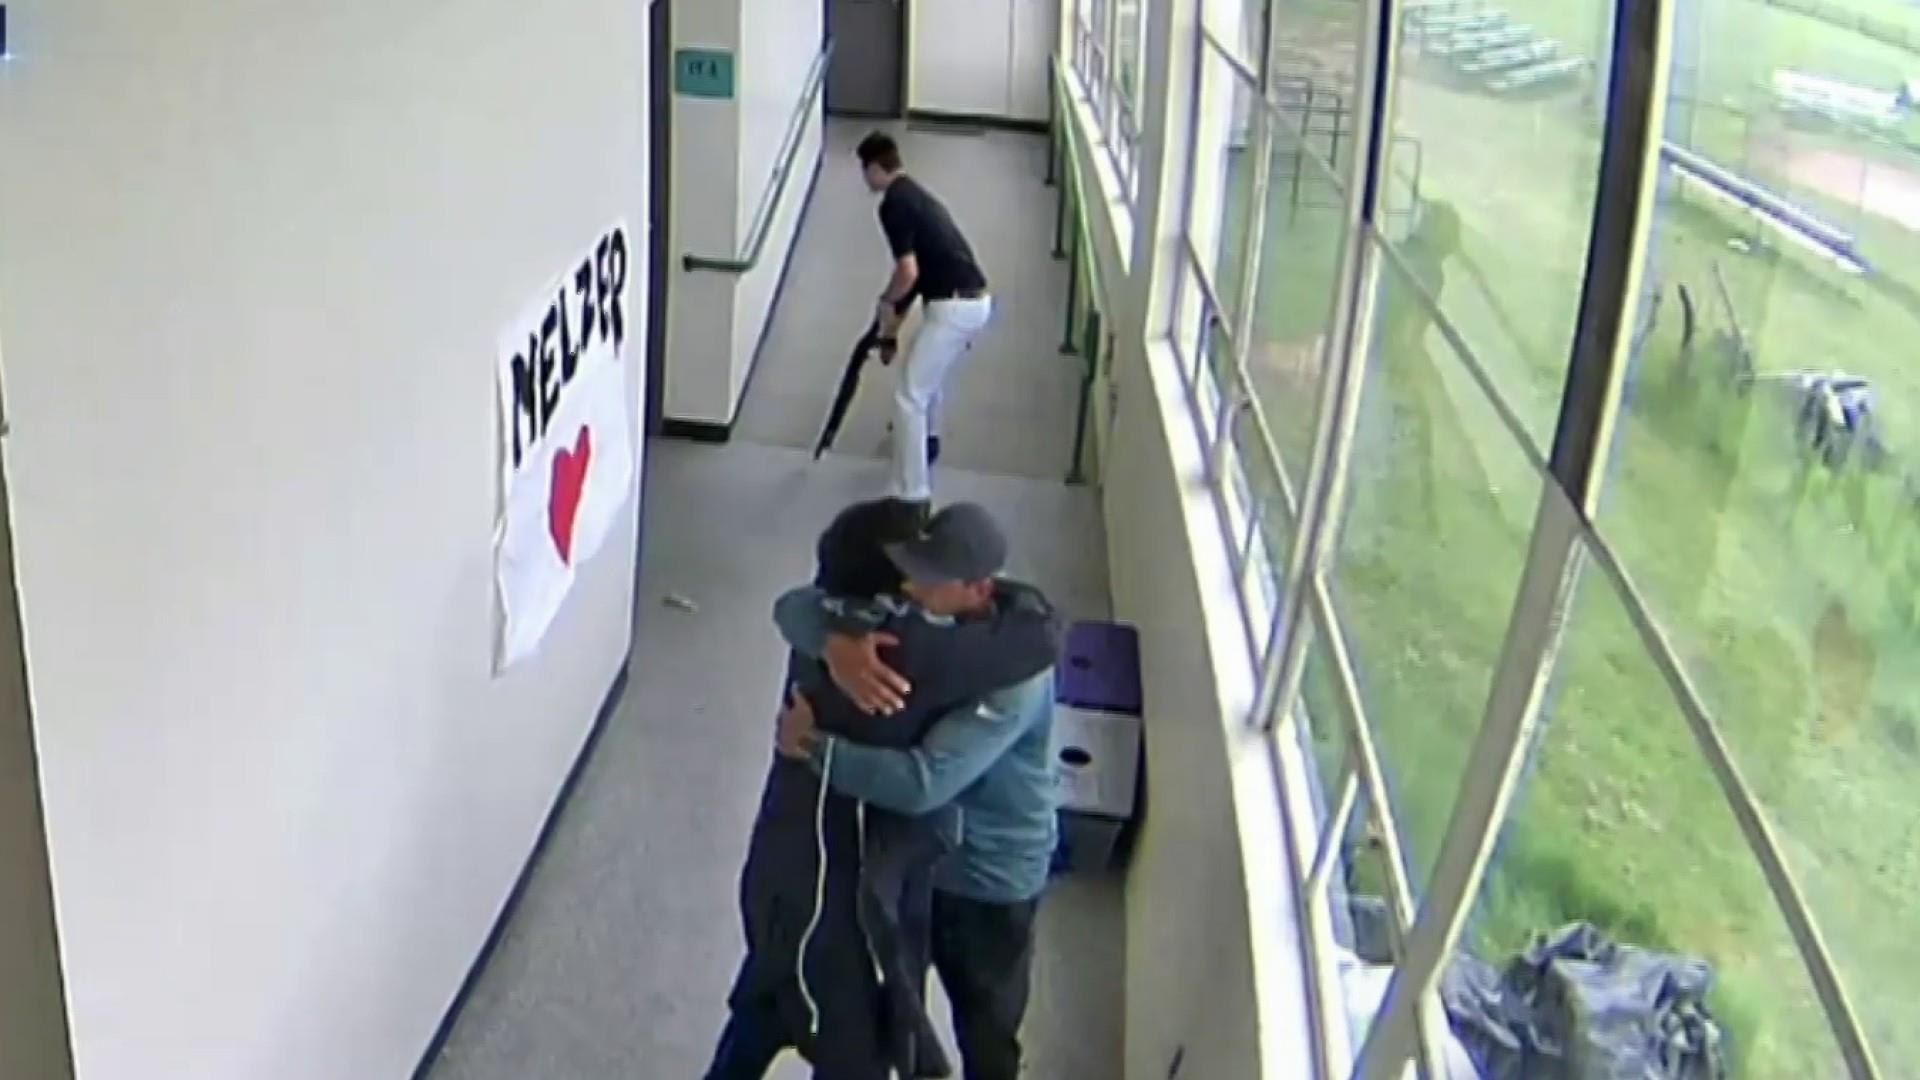 New video shows the moment Oregon school coach disarmed and hugged gun-wielding student